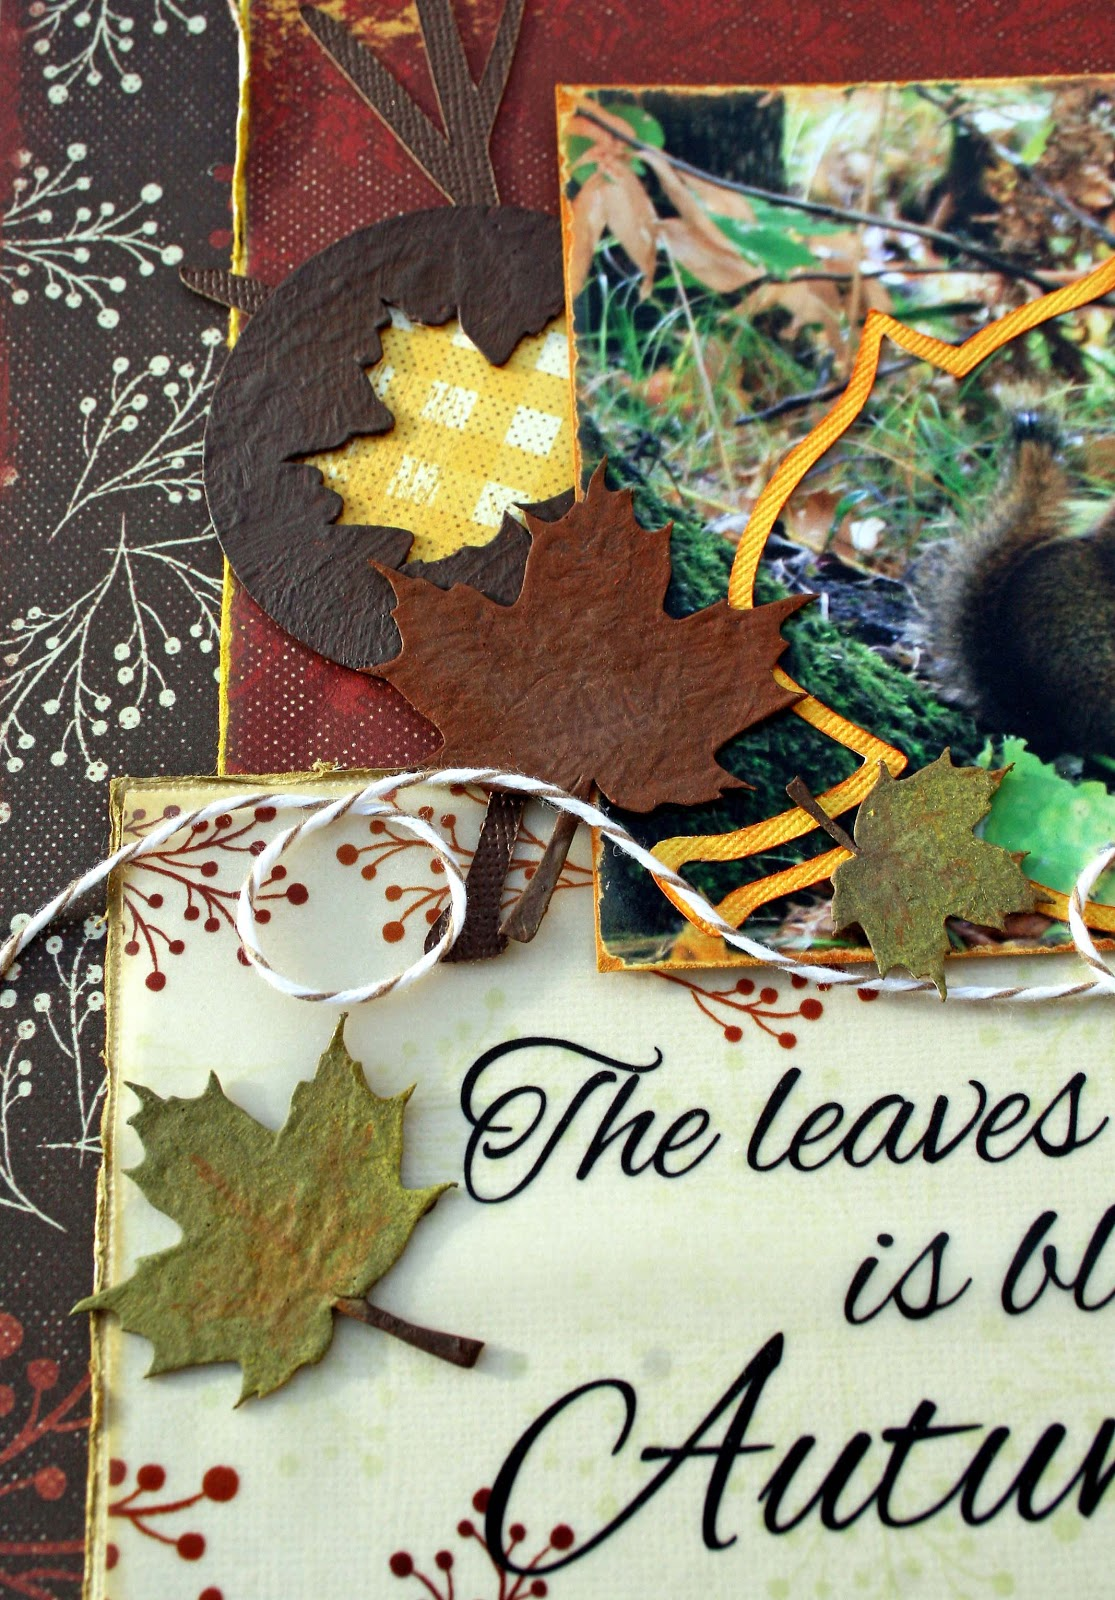 Leaves quote #4